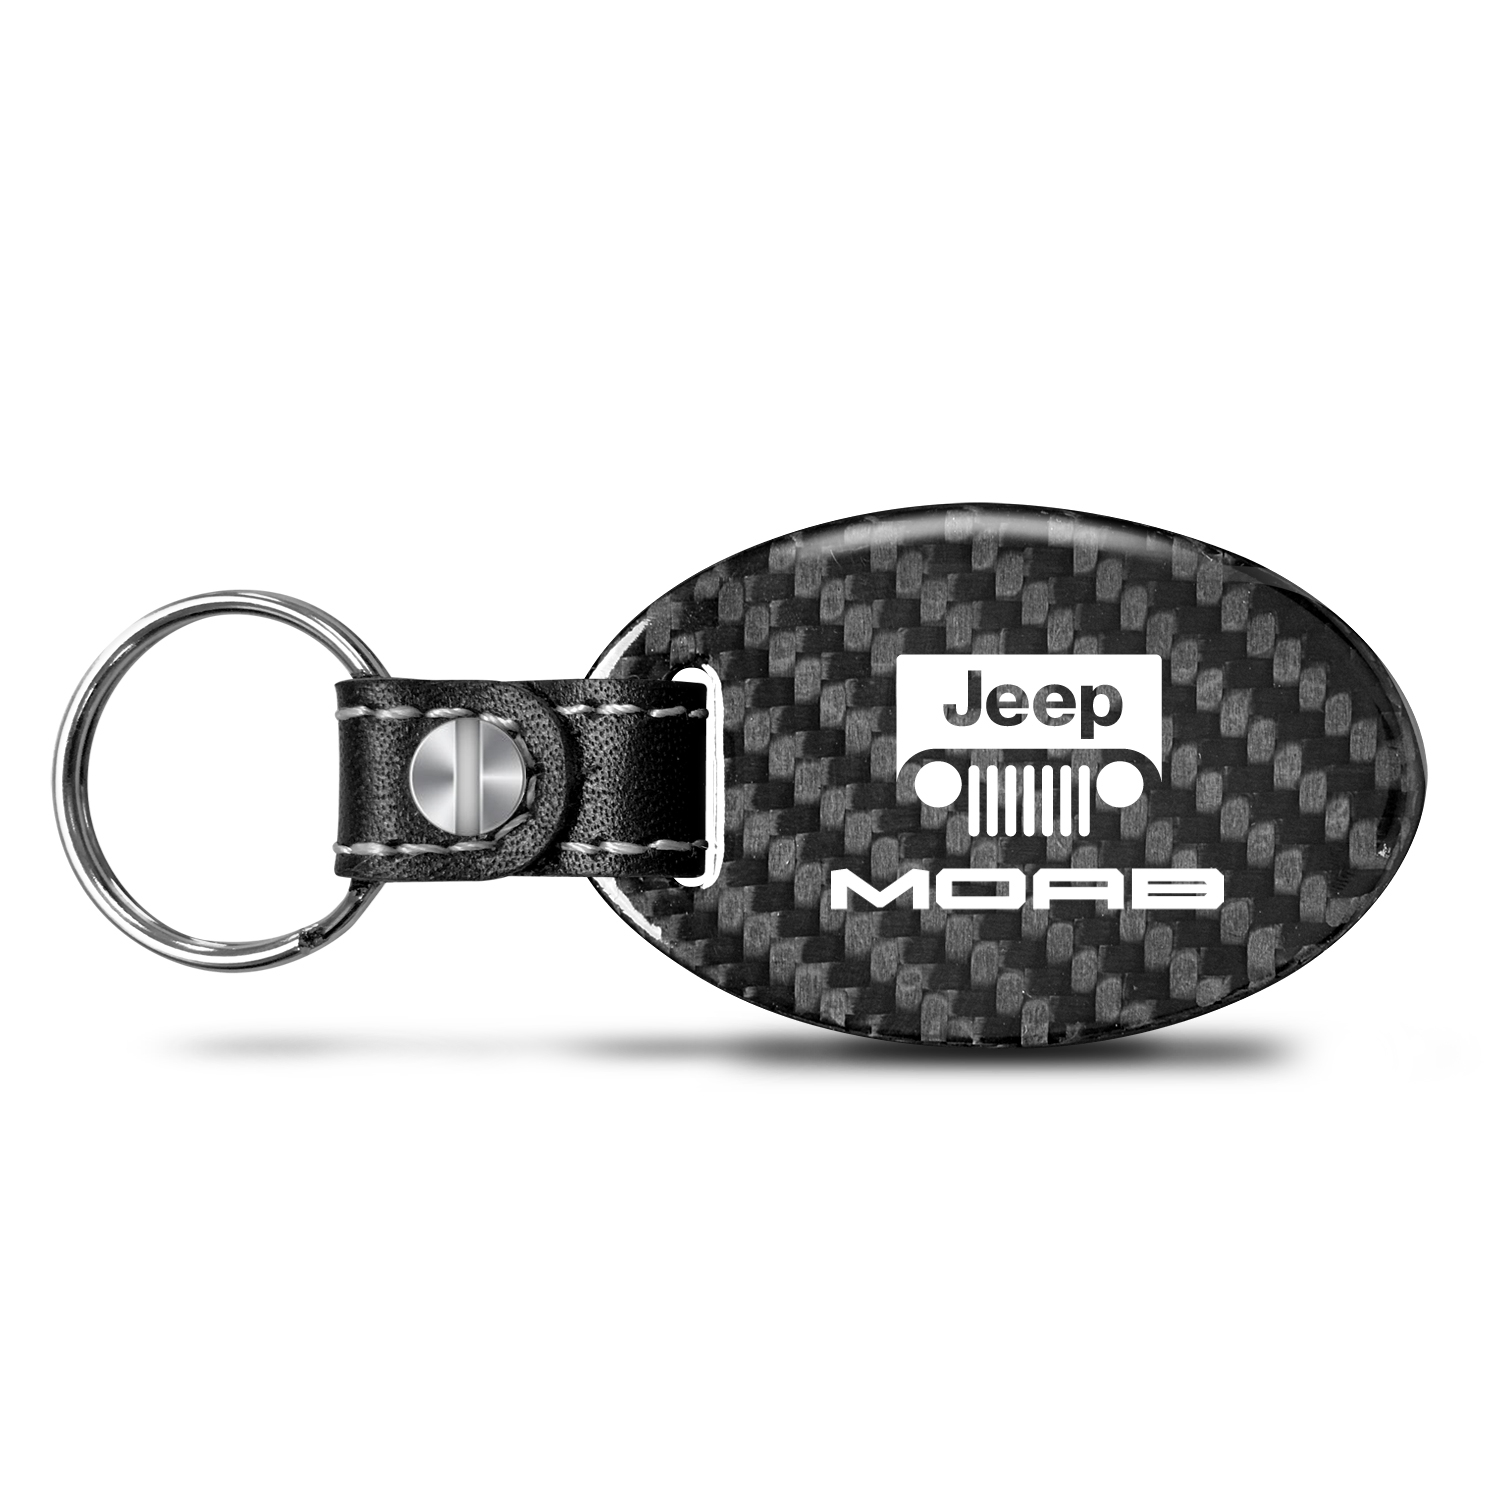 Jeep Moab Real Carbon Fiber Large Oval Shape with Black Leather Strap Key Chain